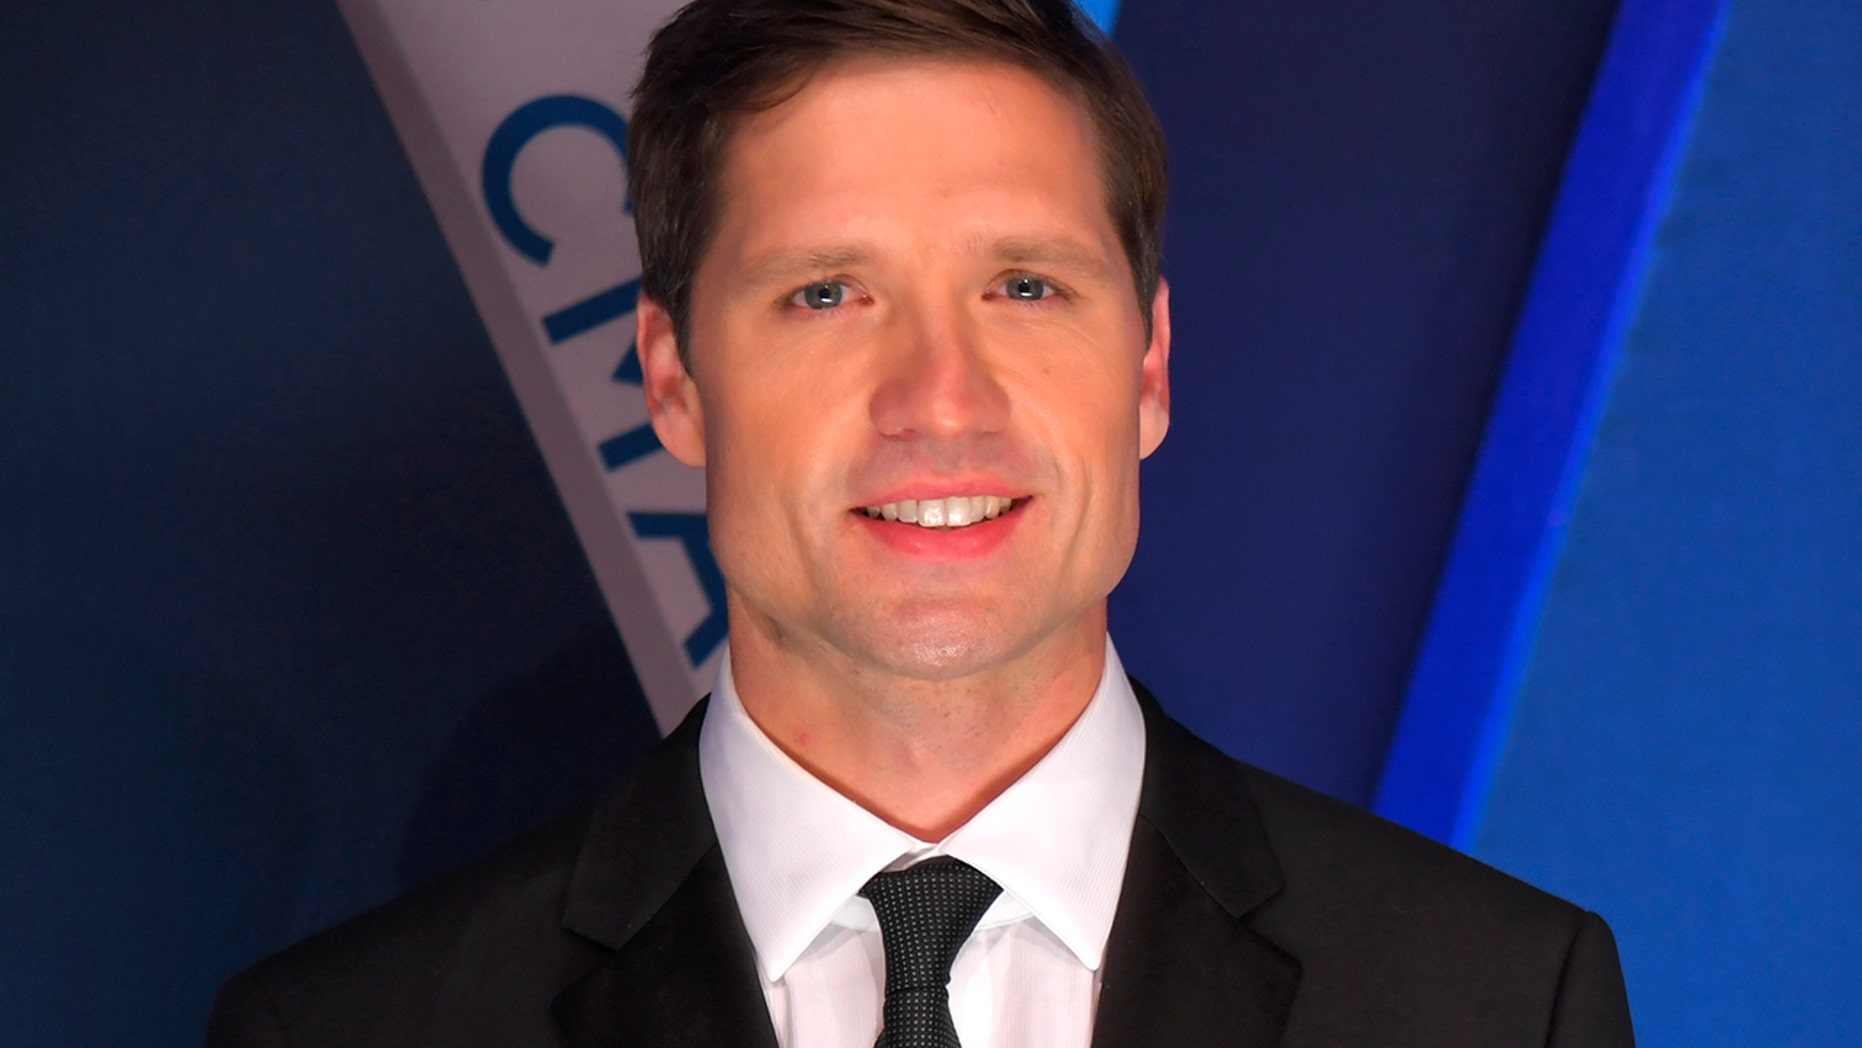 Walker Hayes walks the red carpet at the 51st Country Music Association Awards in Nashville, Tennessee on November 8, 2017.